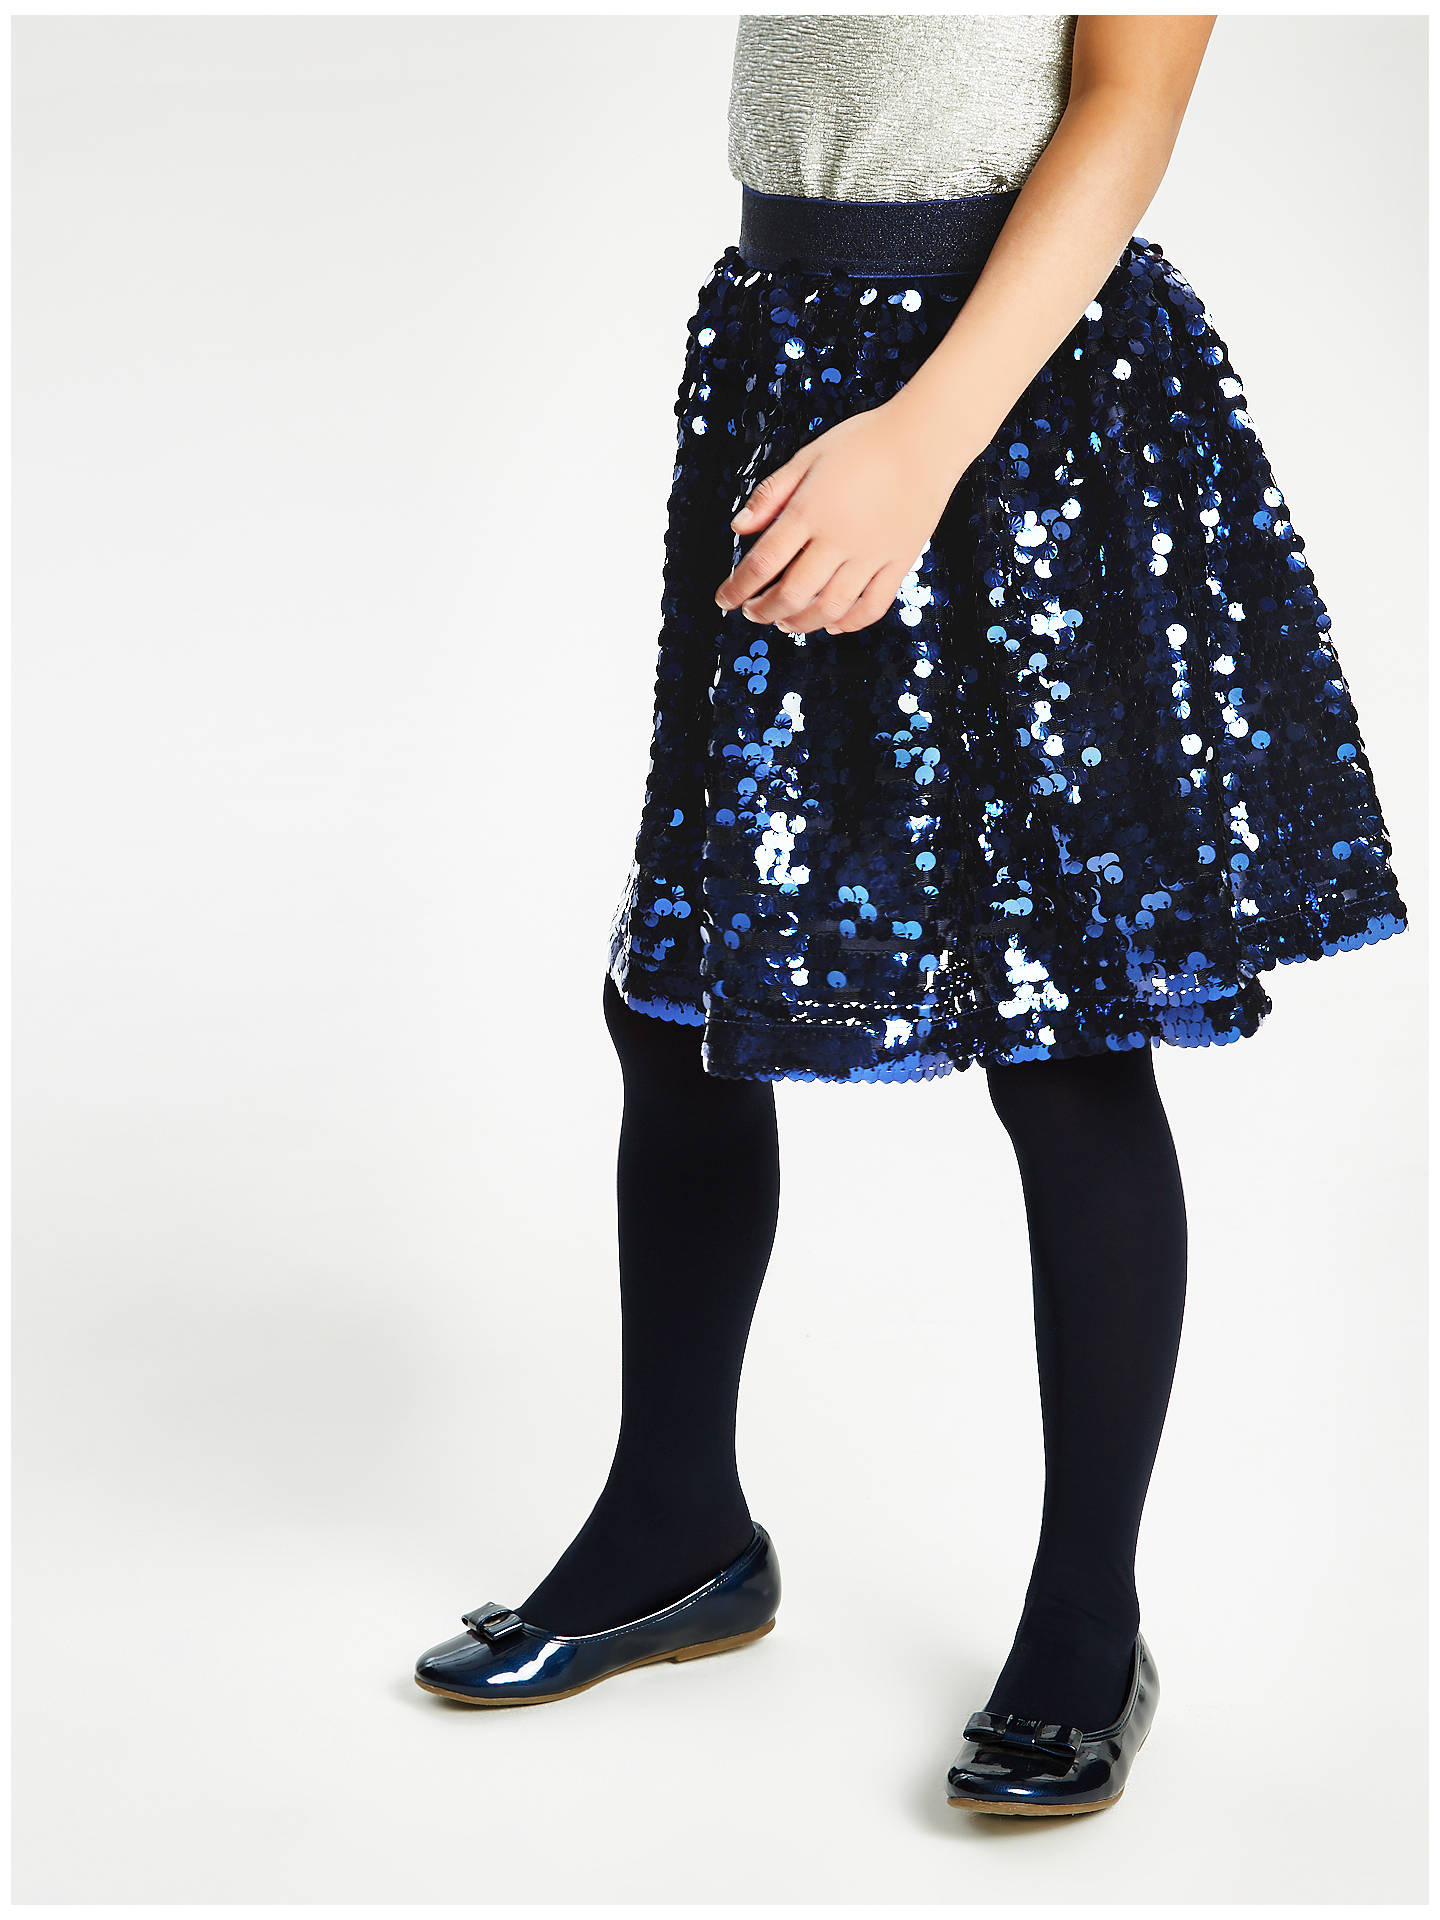 Buy John Lewis & Partners Girls' All Over Sequin Skirt, Navy, 7 years Online at johnlewis.com